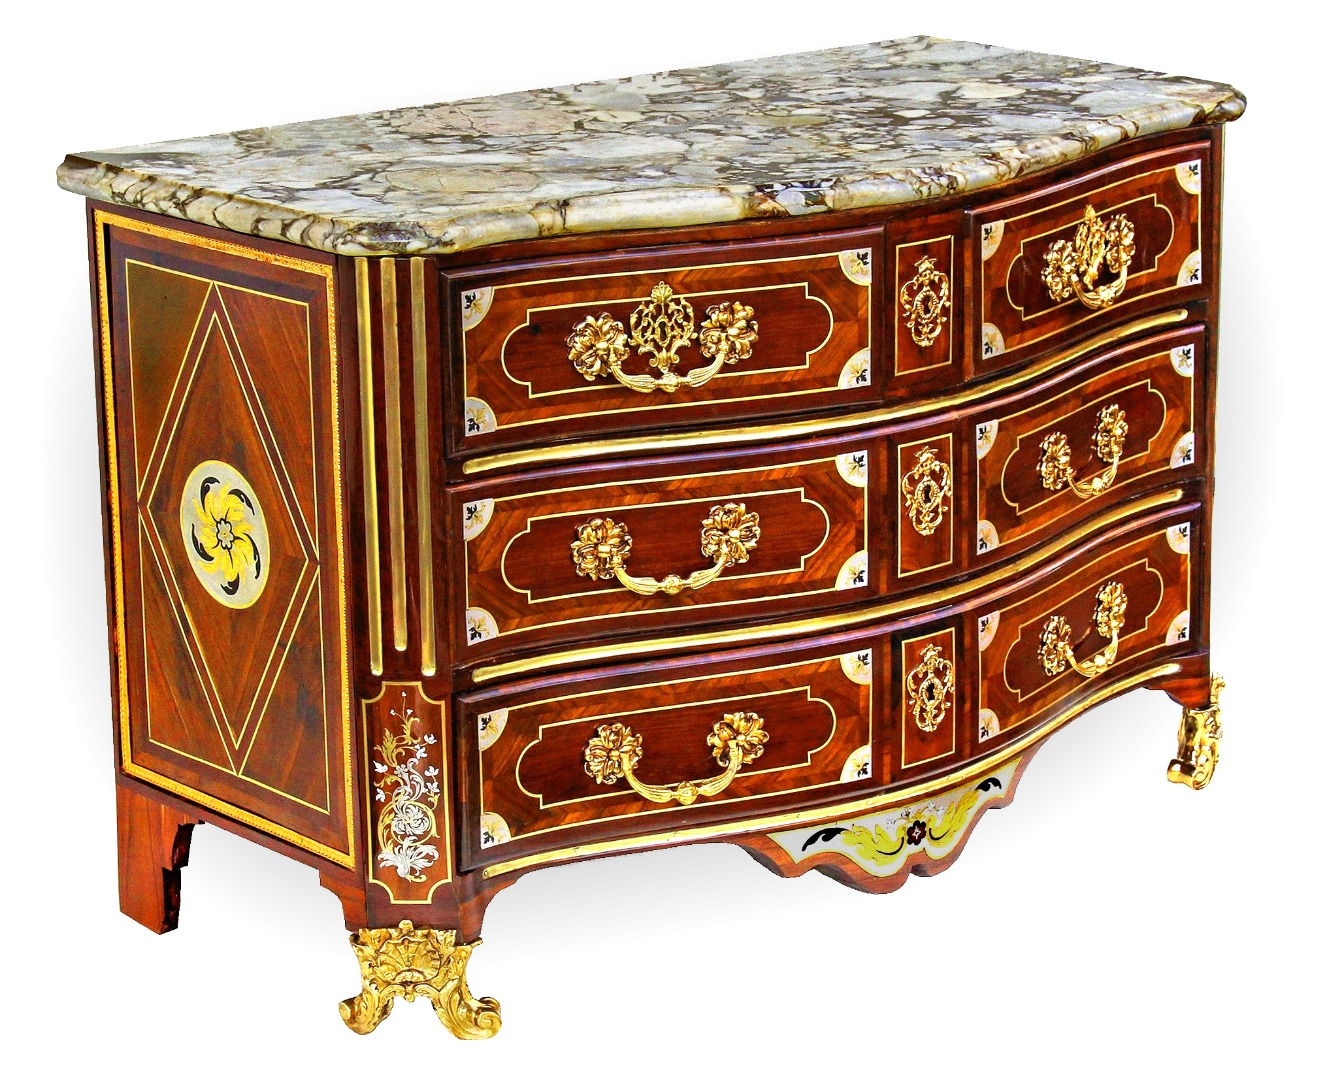 LOUIS XIV PERIOD CHEST OF DRAWERS signed J L F DELORME